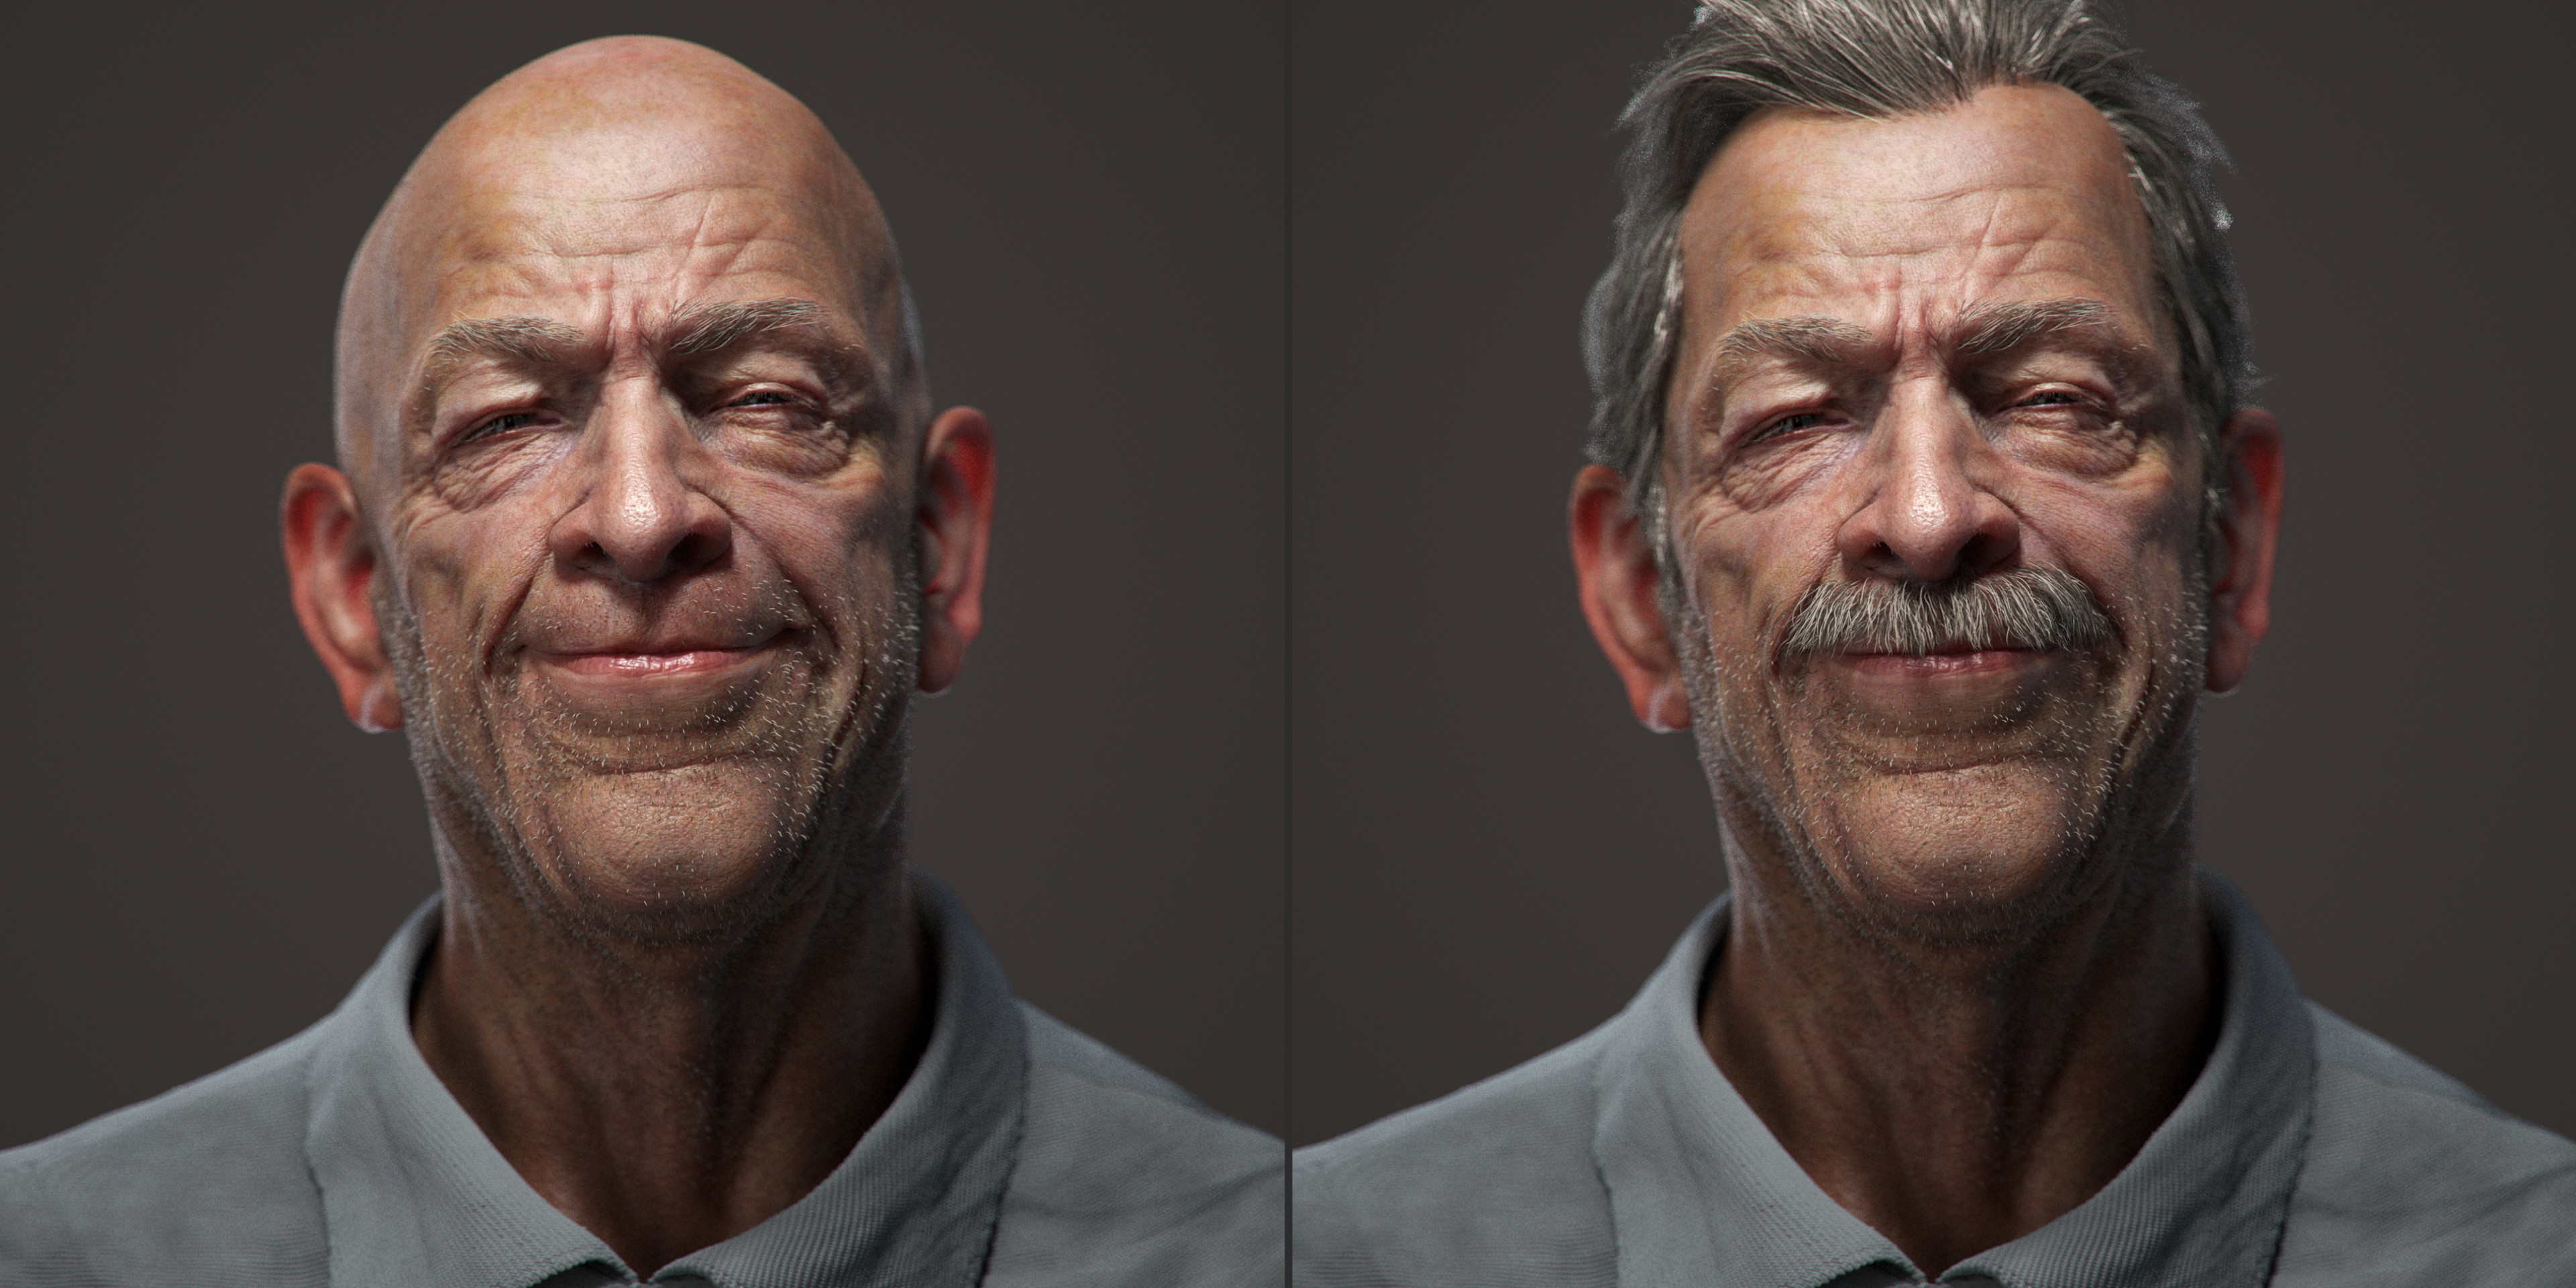 facial rig done and expression.